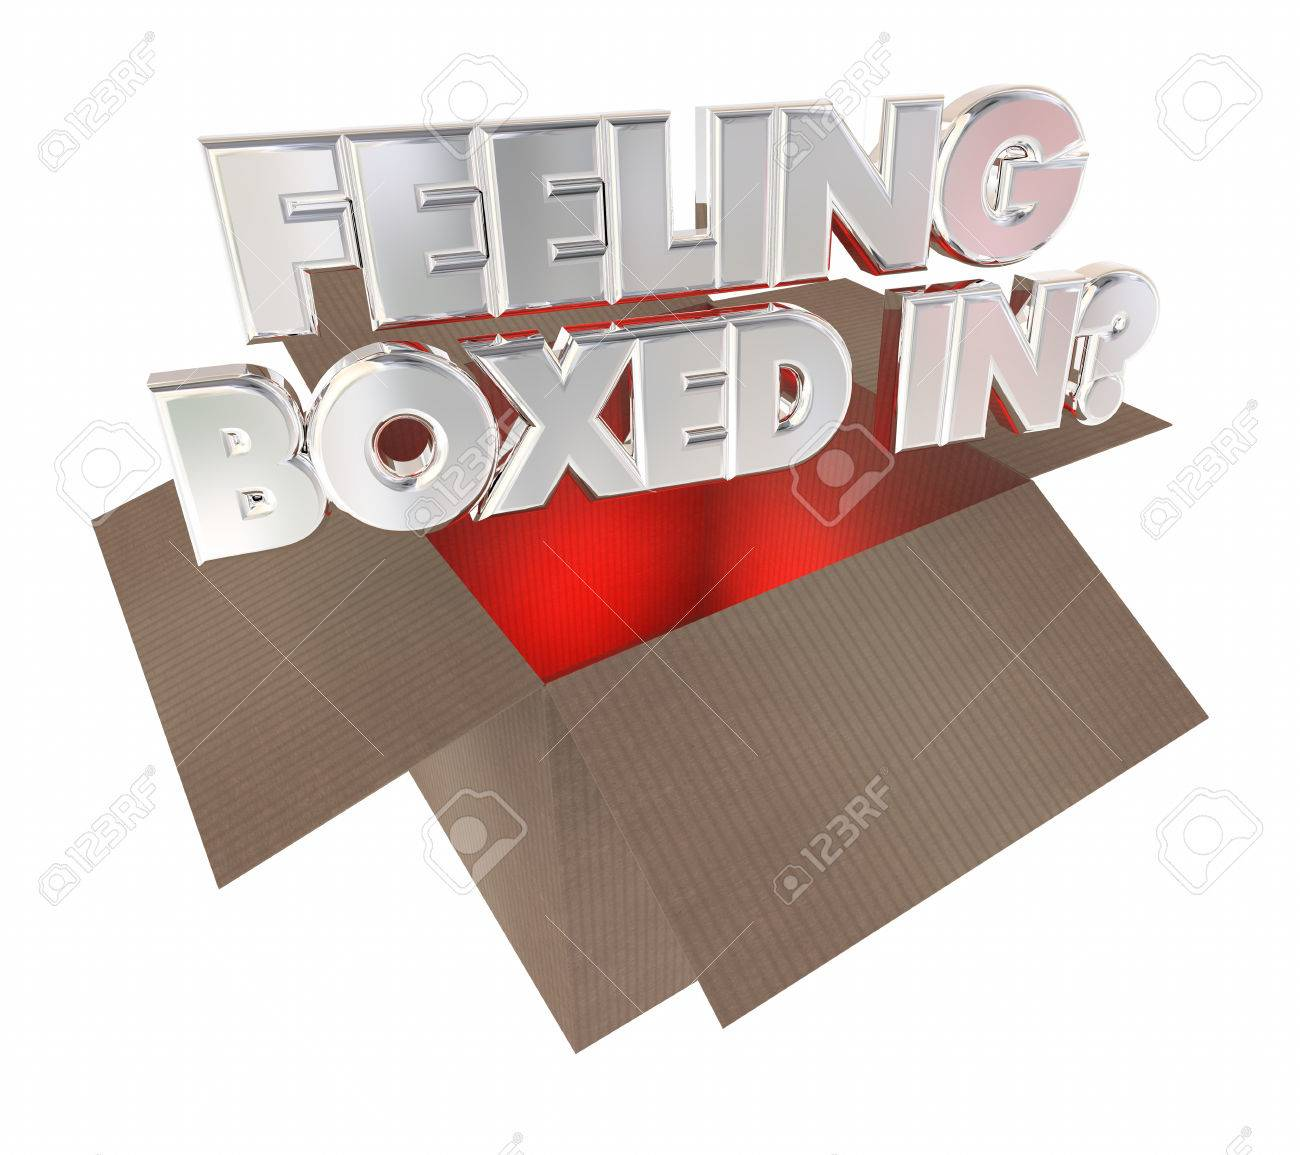 Feeling boxed in cardboard package trapped 3d illustration stock feeling boxed in cardboard package trapped 3d illustration stock illustration 66529397 buycottarizona Gallery